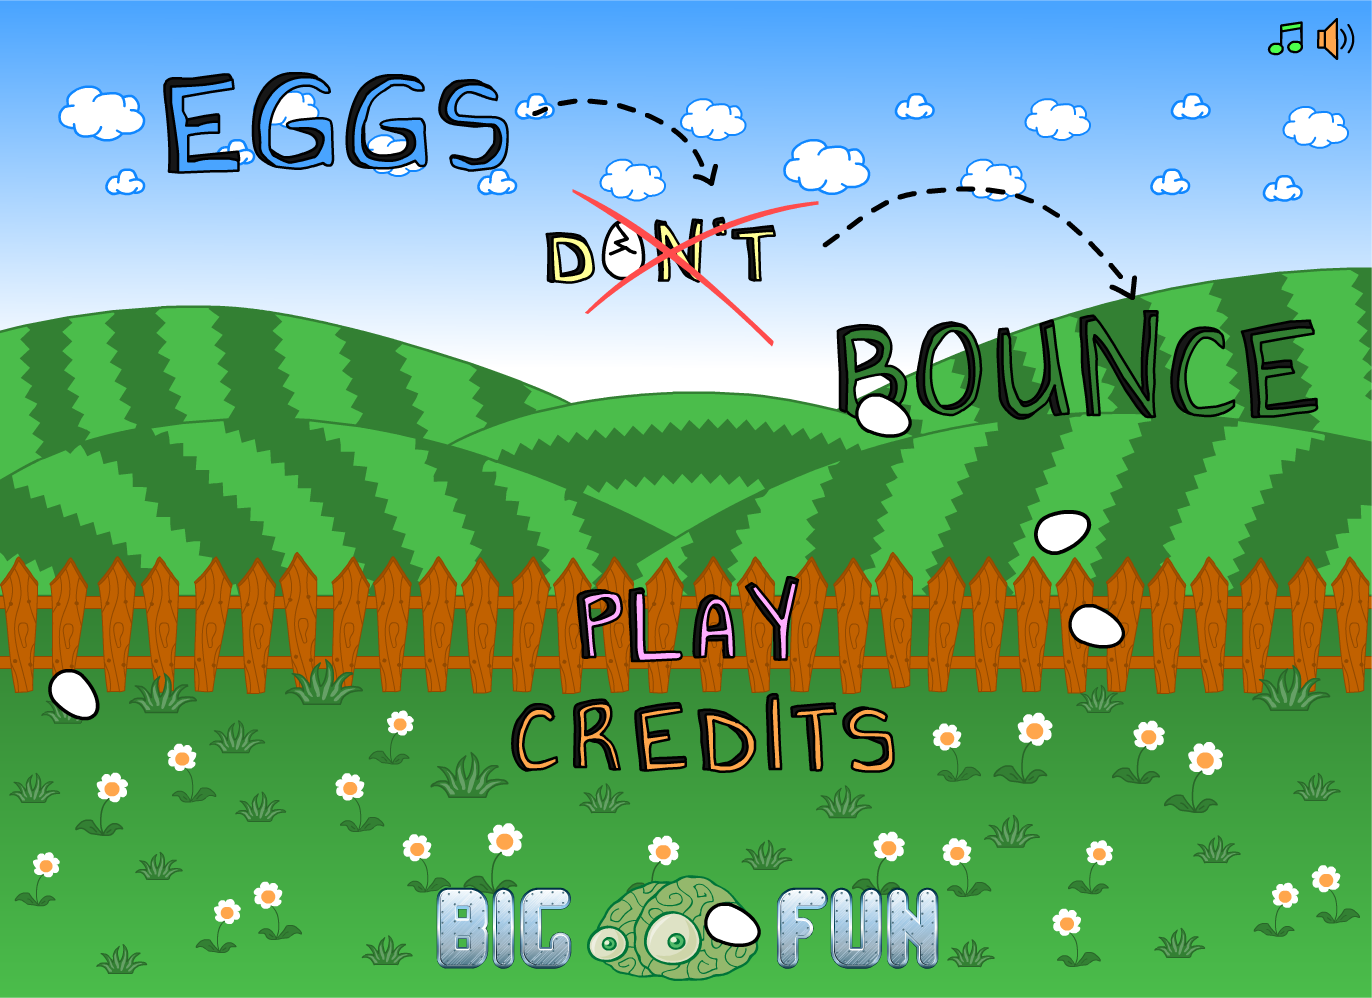 Image Eggs Don't Bounce